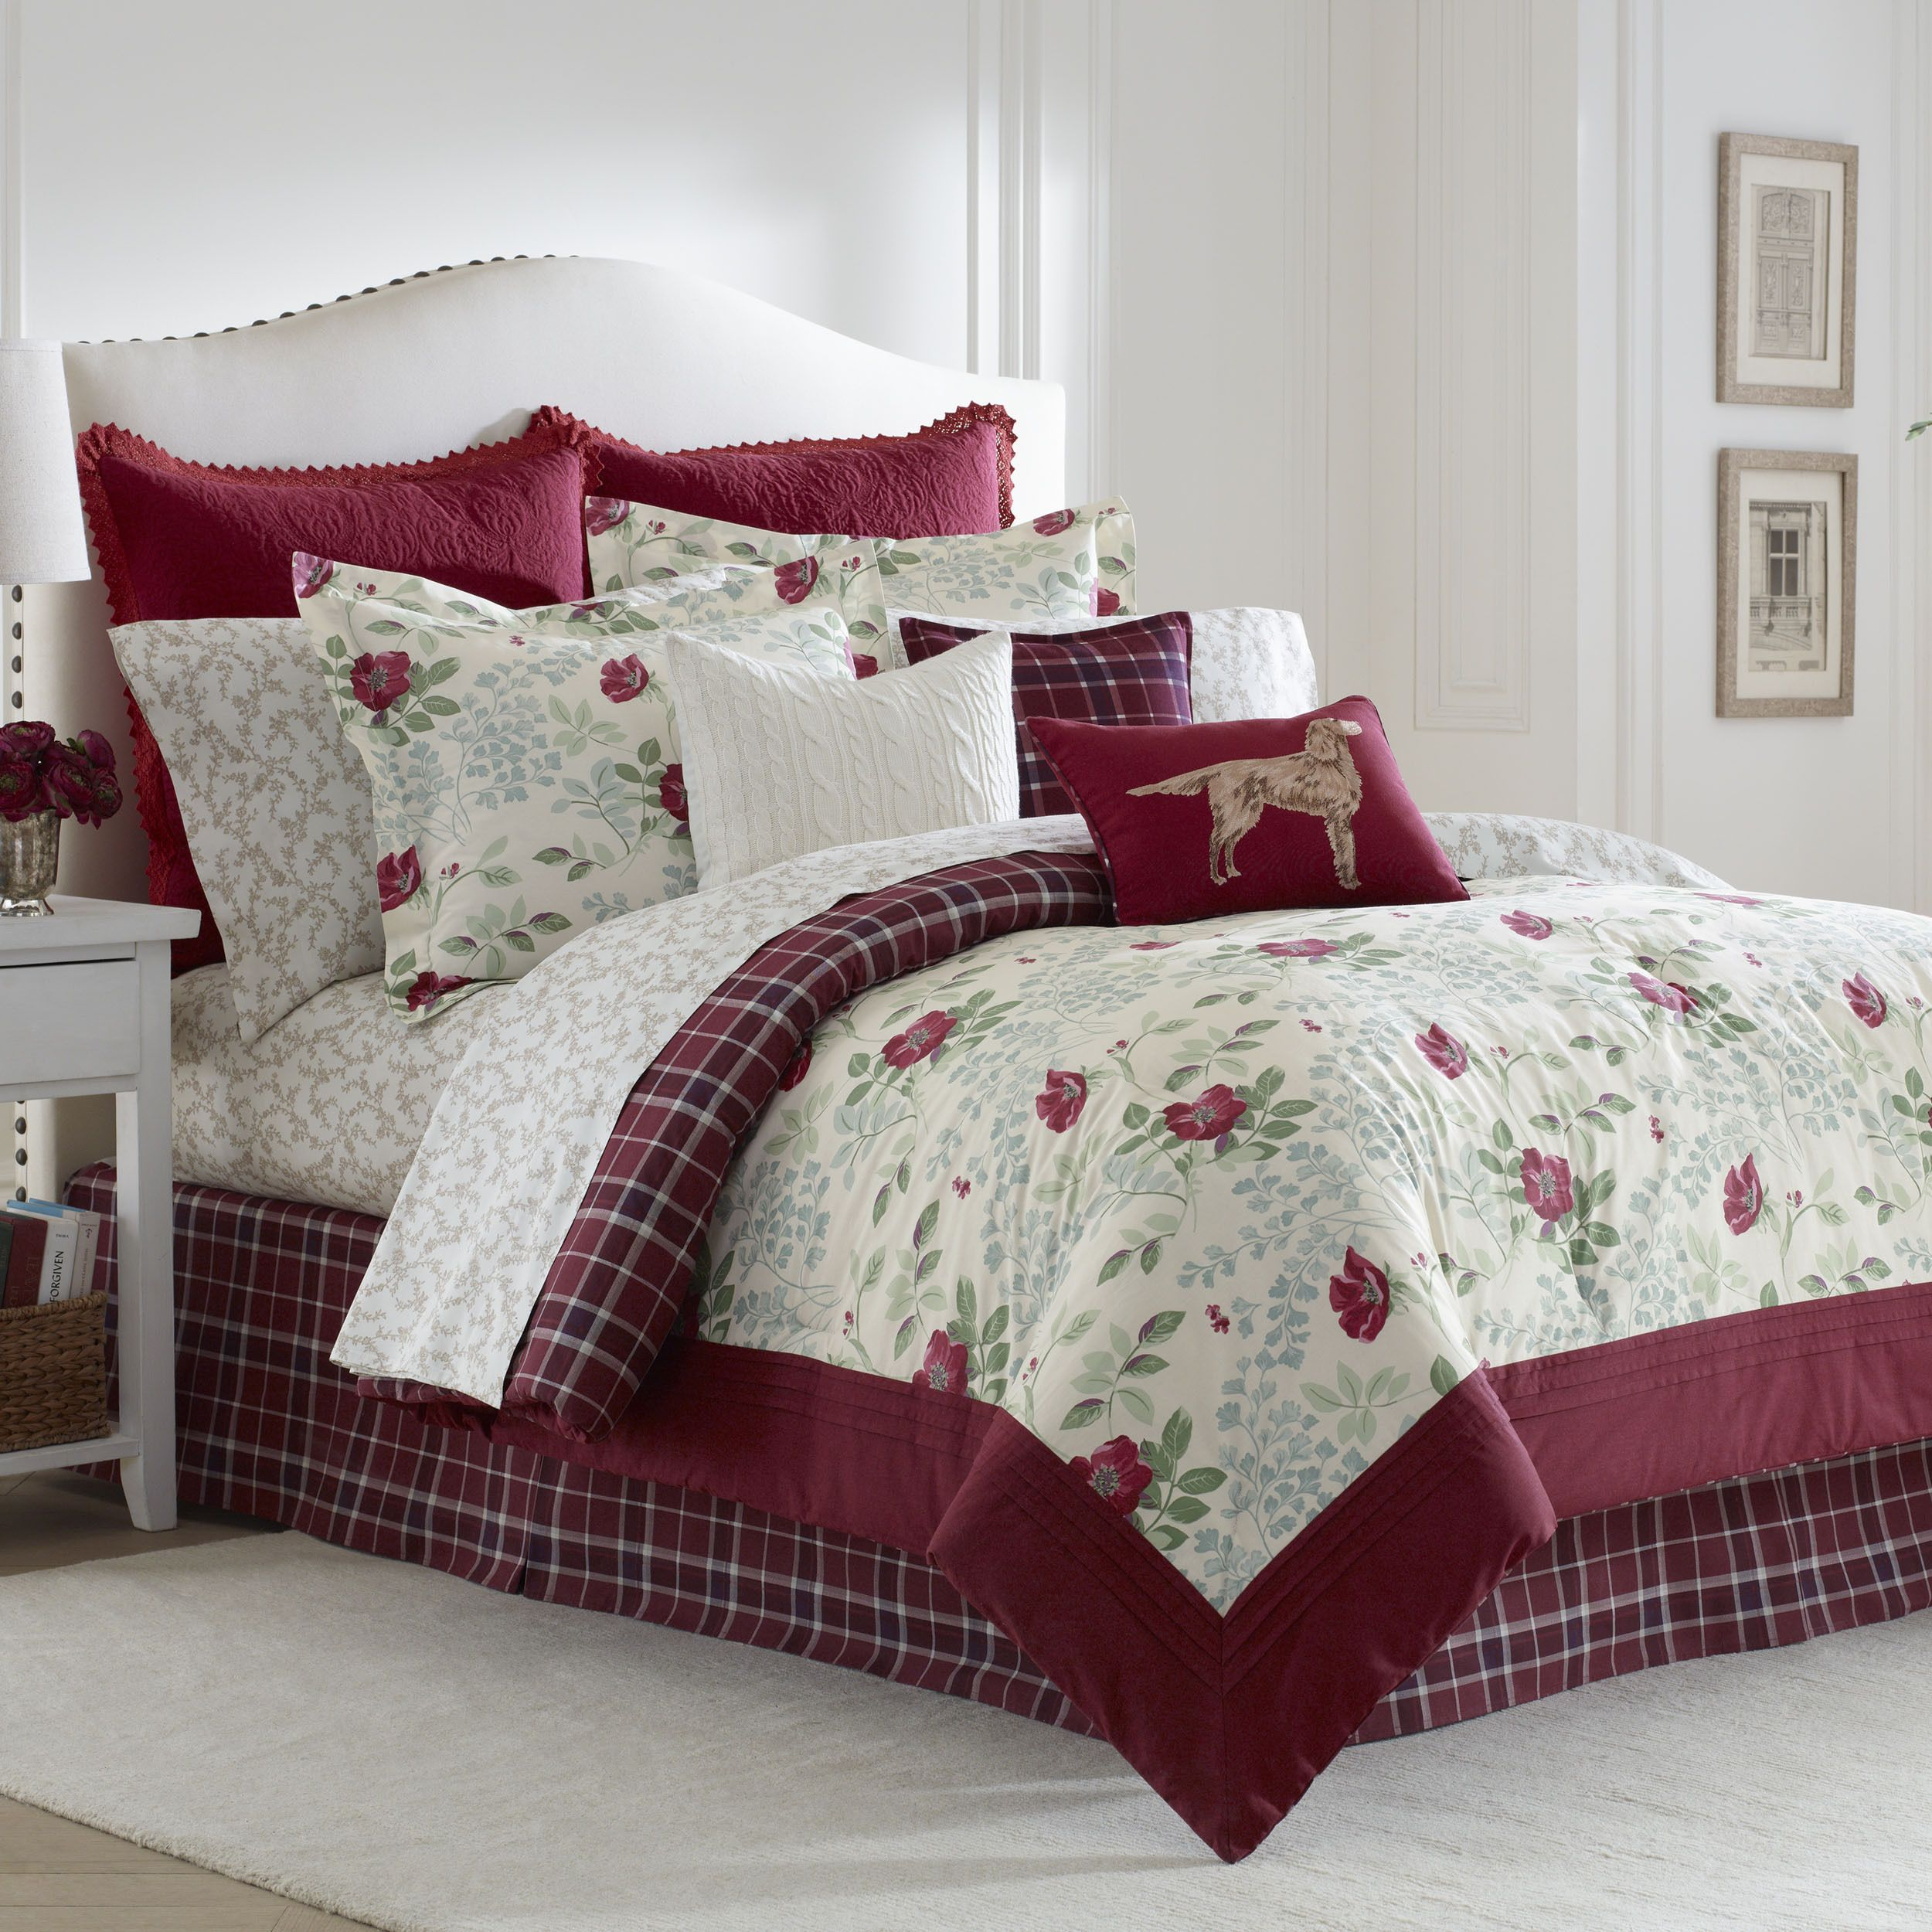 set accessories idea comforter sets white images inside bed on enjoyable and house your pictures red k bedding burgundy